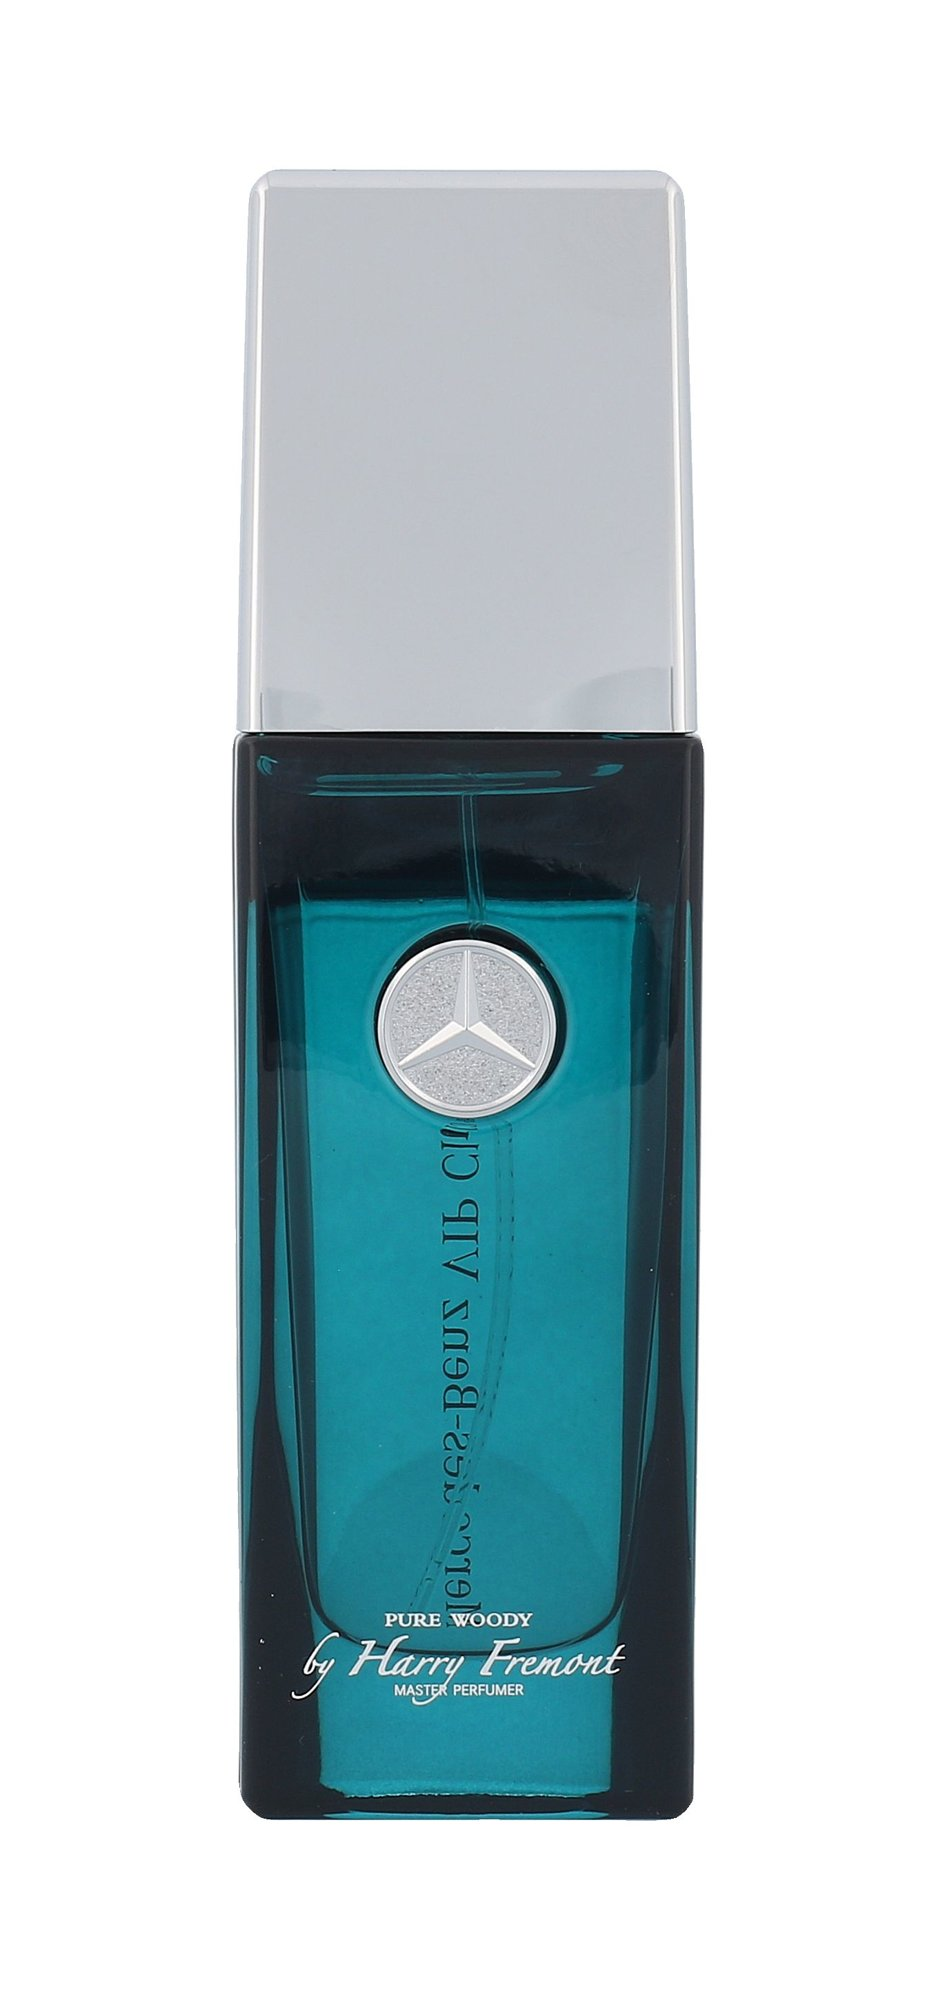 Mercedes-Benz Vip Club Pure Woody by Harry Fremont EDT 50ml